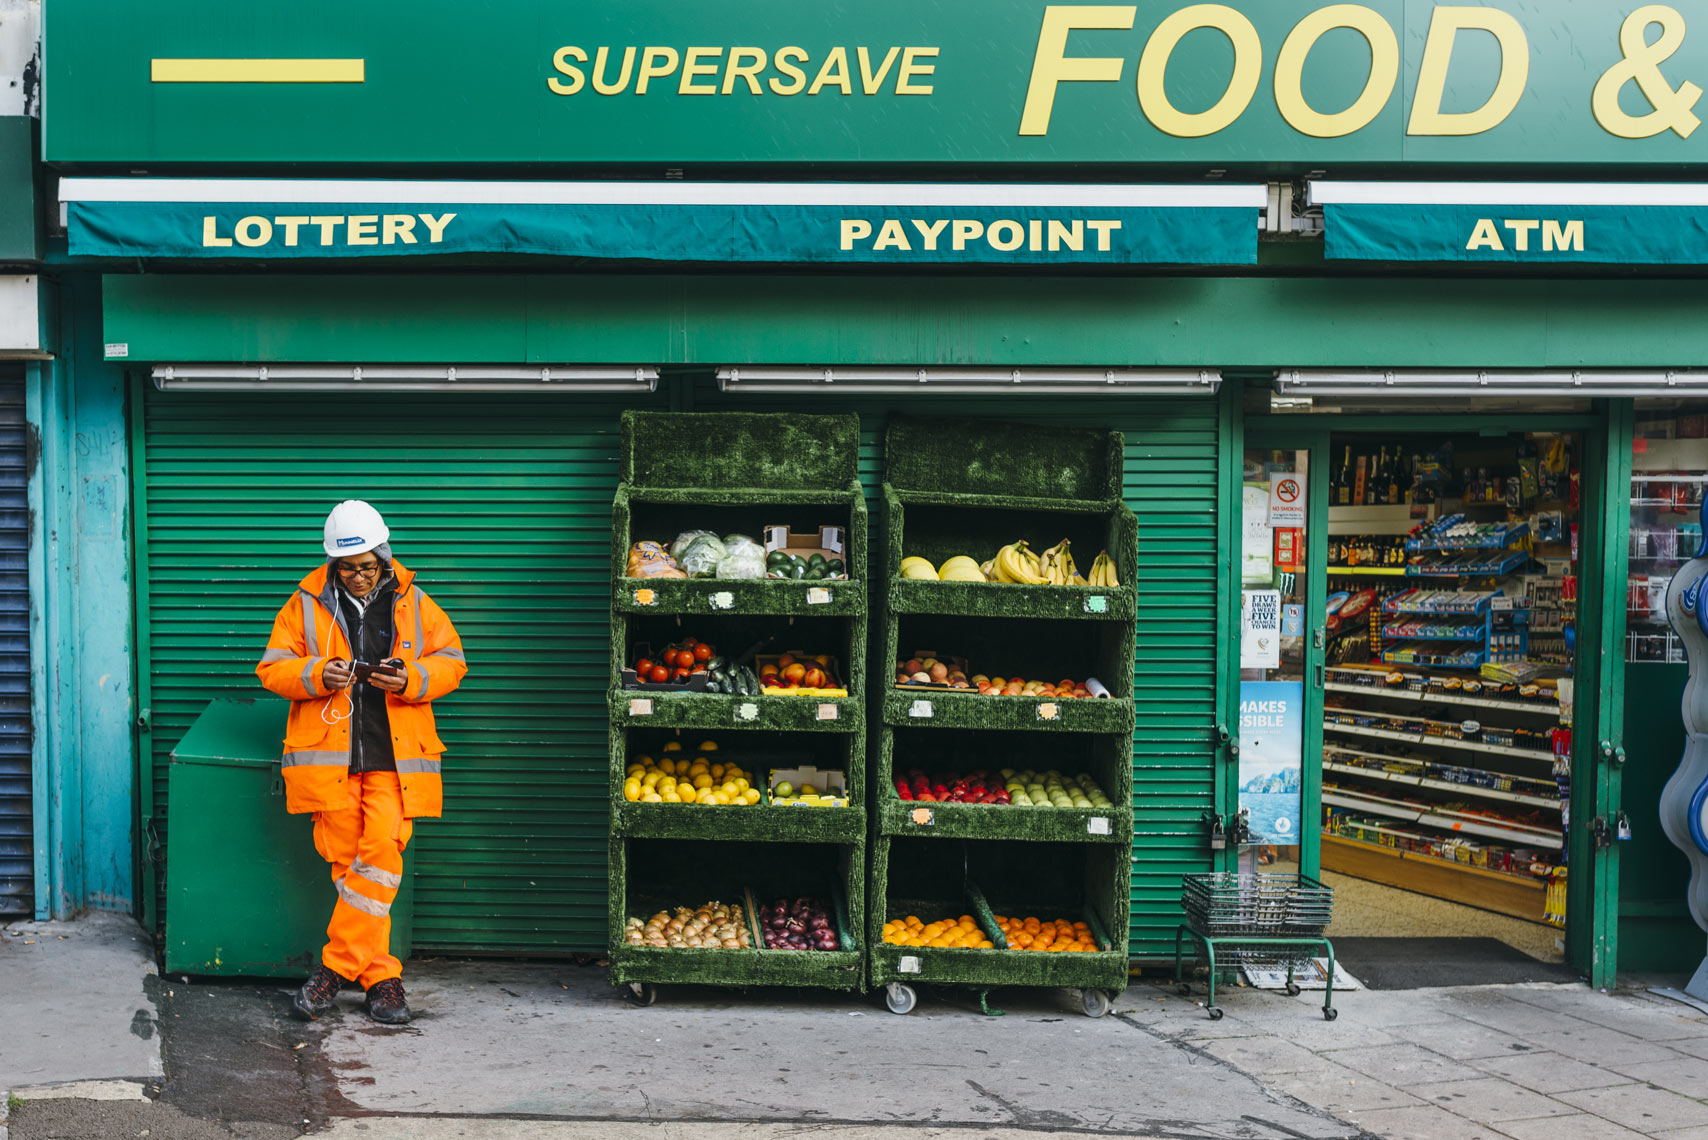 Man-in-orange-construction-uniform-stands-at-green-super-market